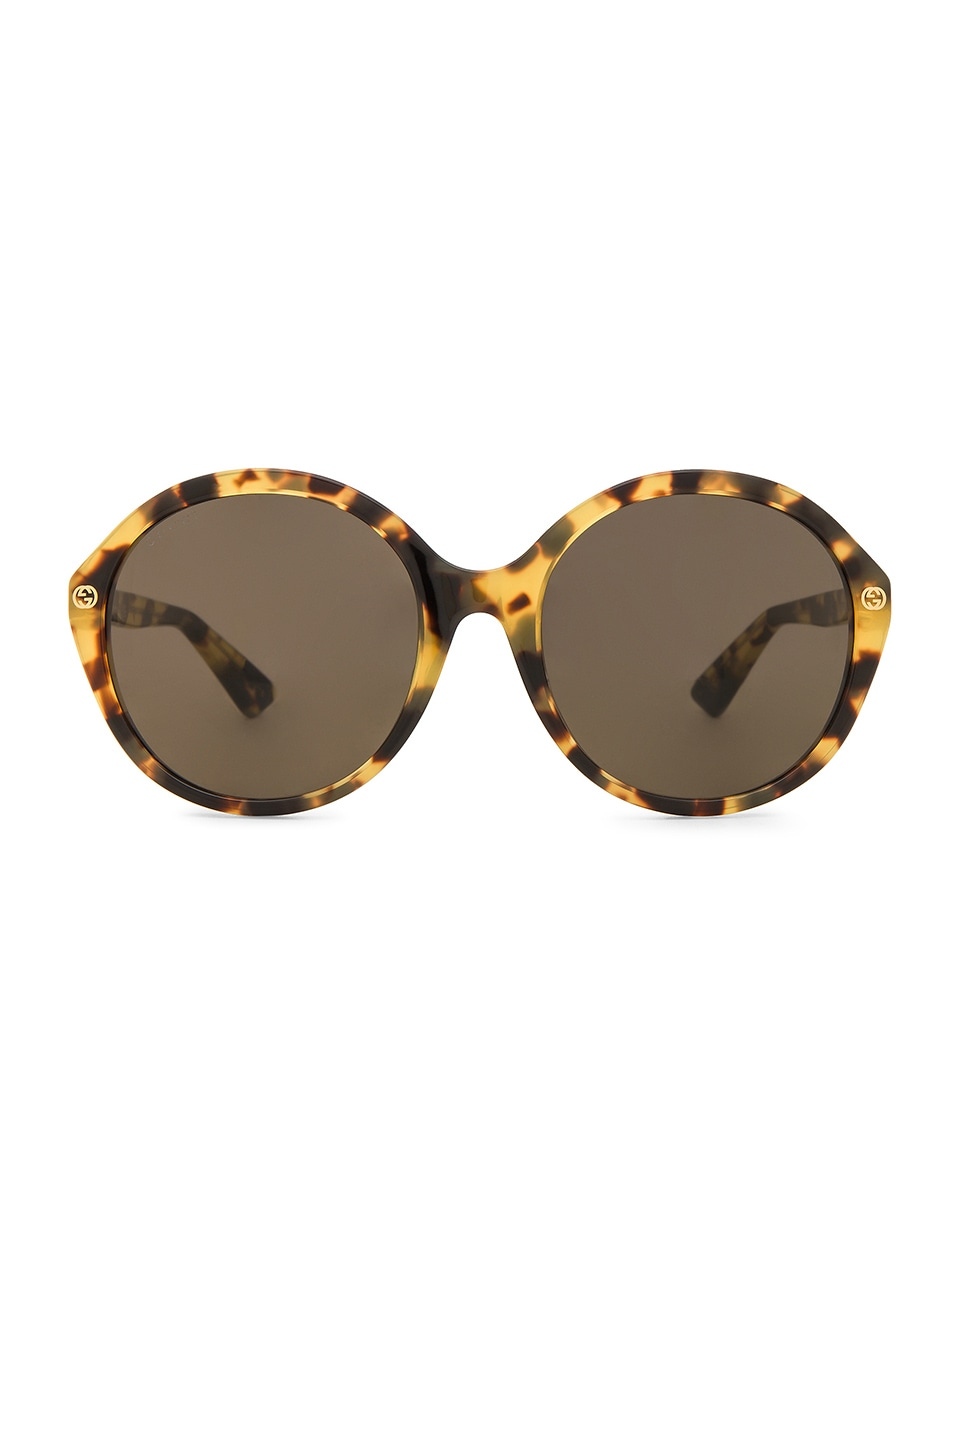 Gucci Oversize Round Acetate in Shiny Yellow Spotted Havana & Brown